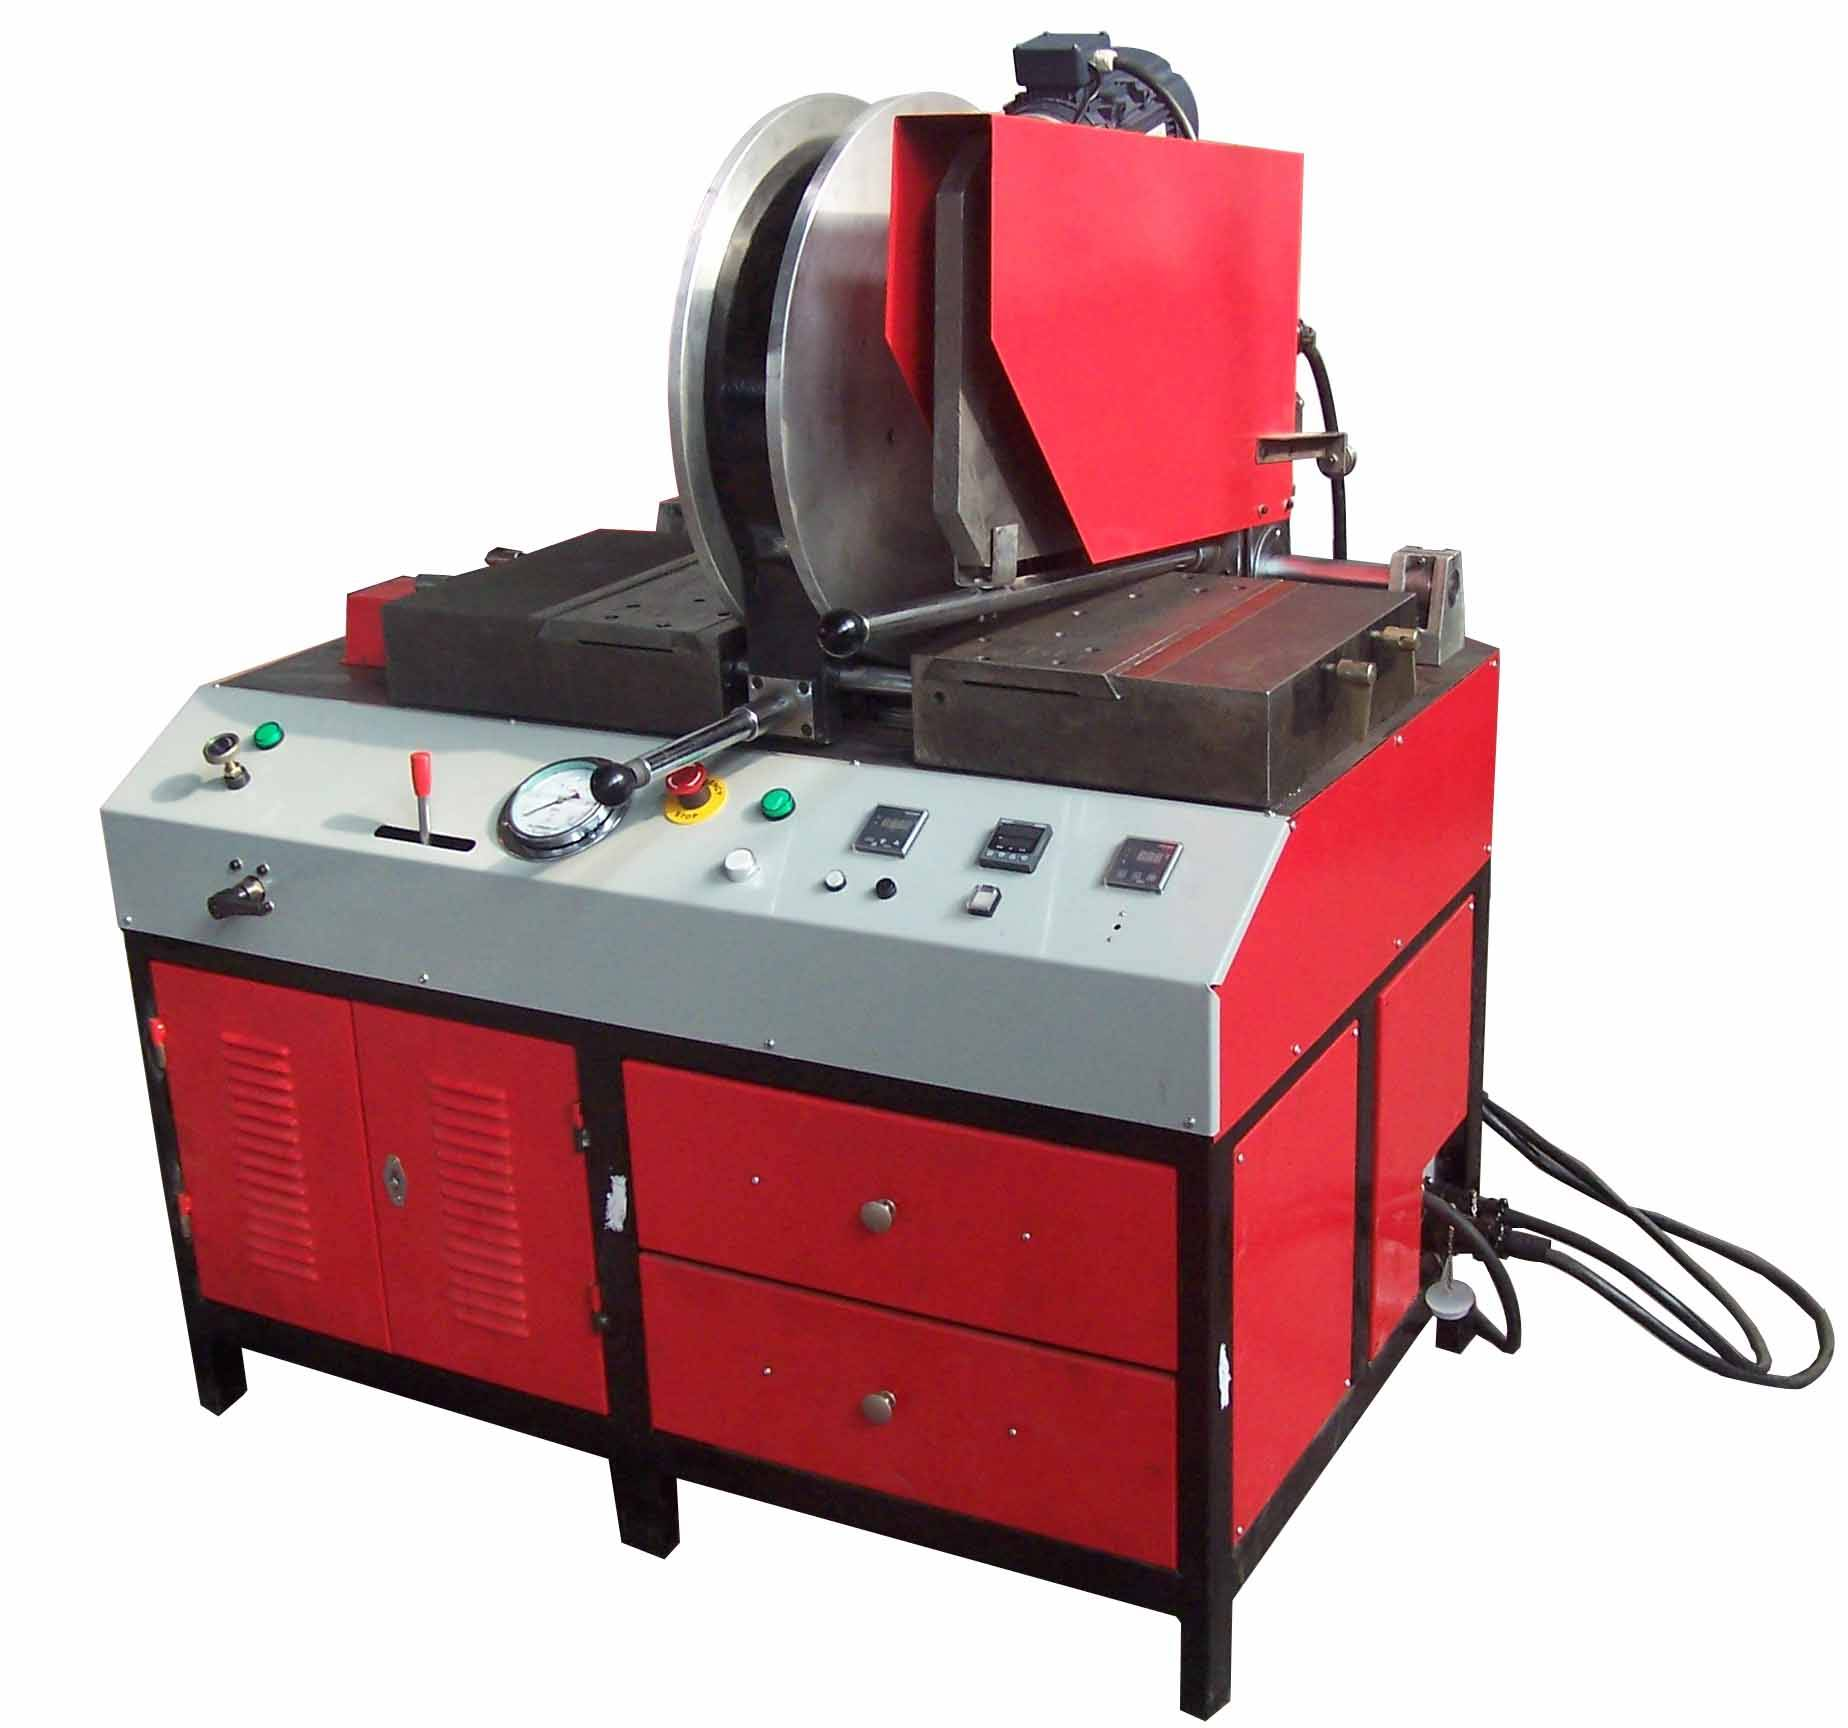 Plastic pipe welding machine/ Fitting fusion welding machine SHG315